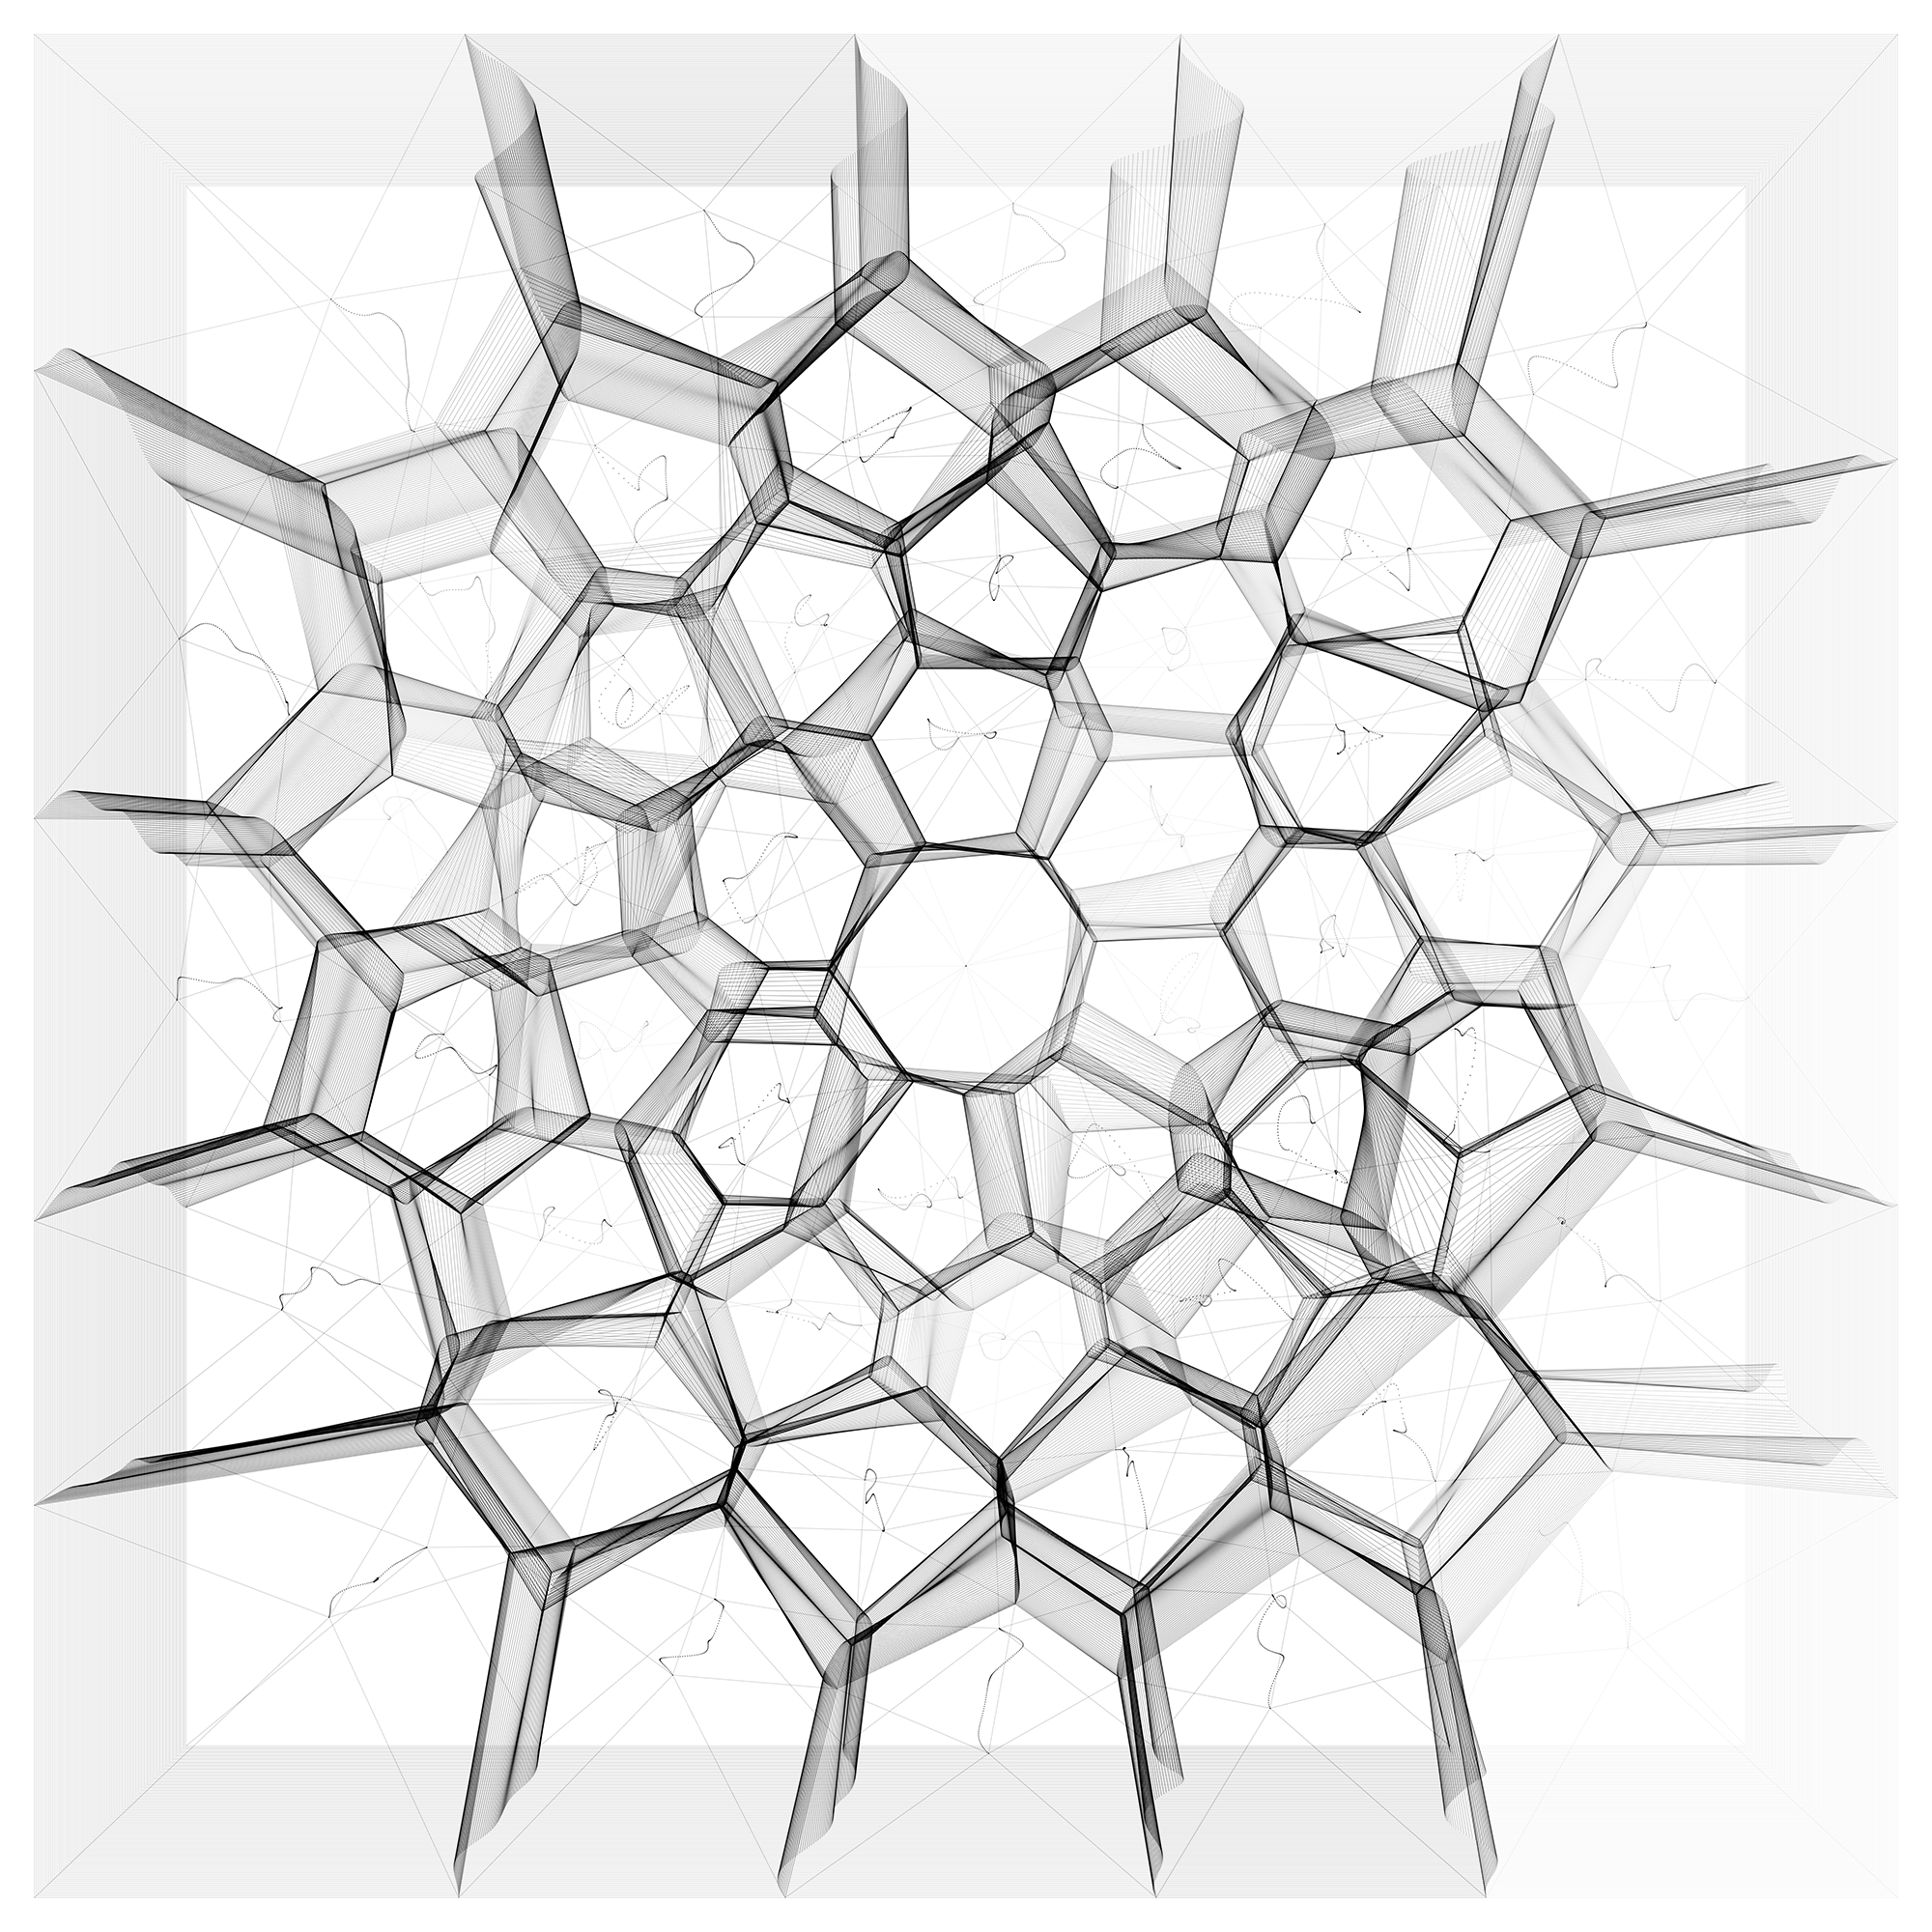 Voronoi2Layer-2015-04-28-19-41-37-236_high.png